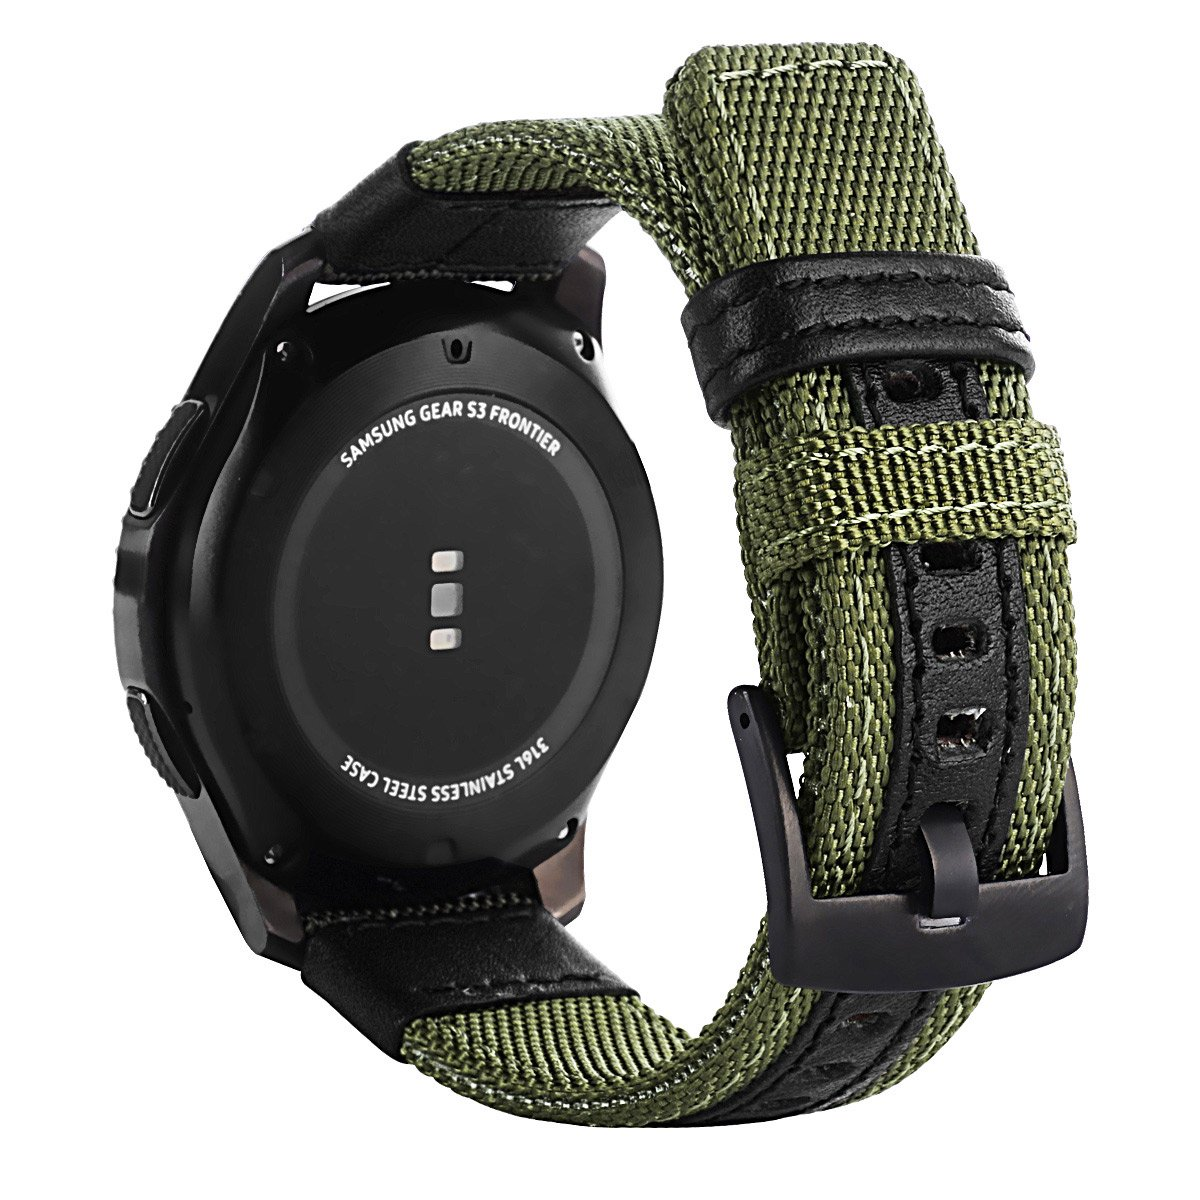 Gear S3 Bands Nylon, Maxjoy S3 Frontier Classic Band 22 mm Woven Nylon Replacement Strap Large Sport Wristband Bracelet with Stainless Steel Metal Buckle for Samsung Gear S3 Smart Watch, Army Green by Maxjoy (Image #1)